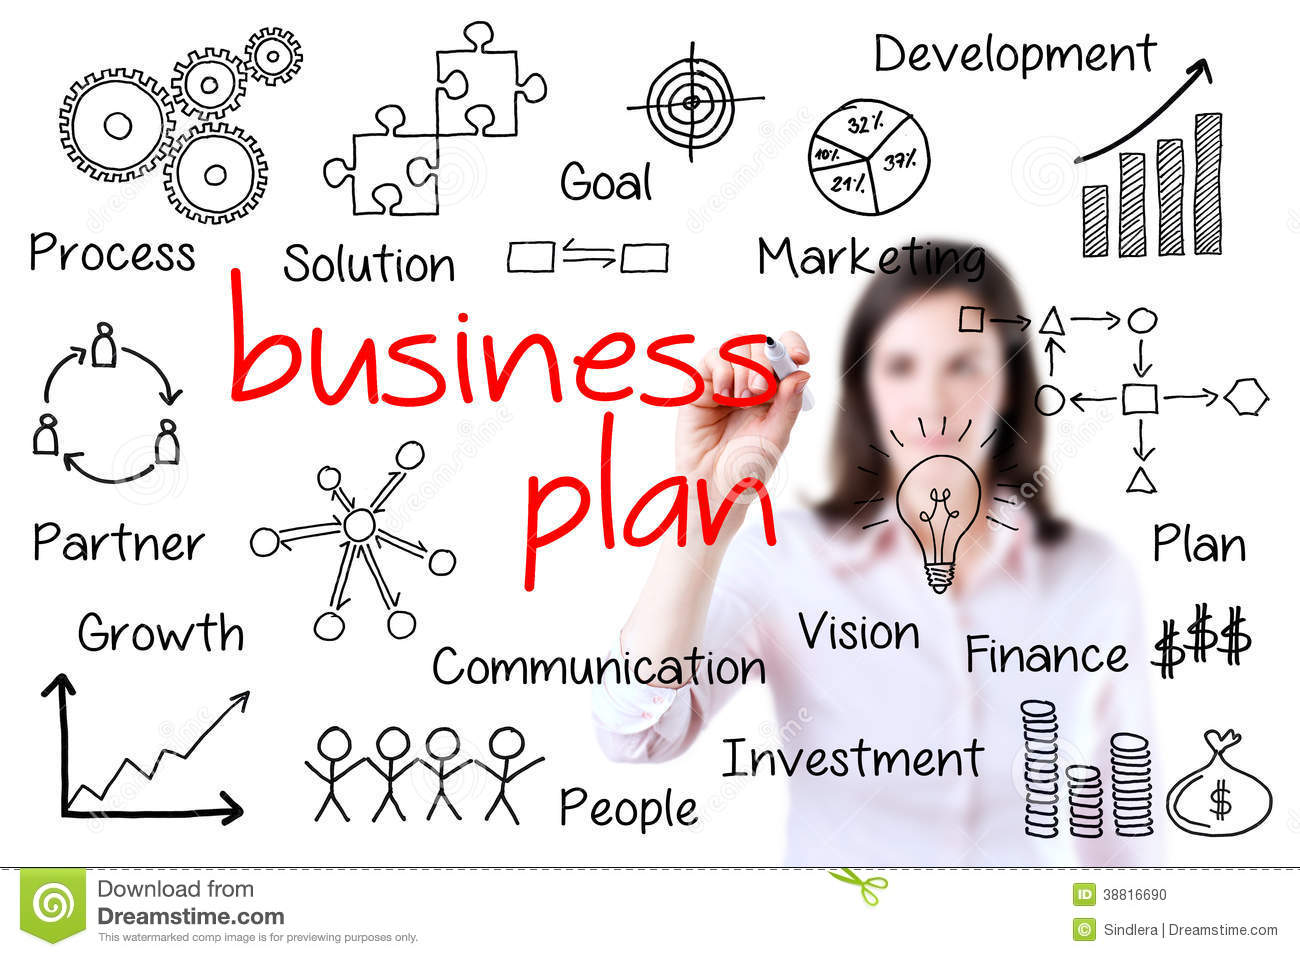 Professional Business Plan Writers London   Business Plan Writer